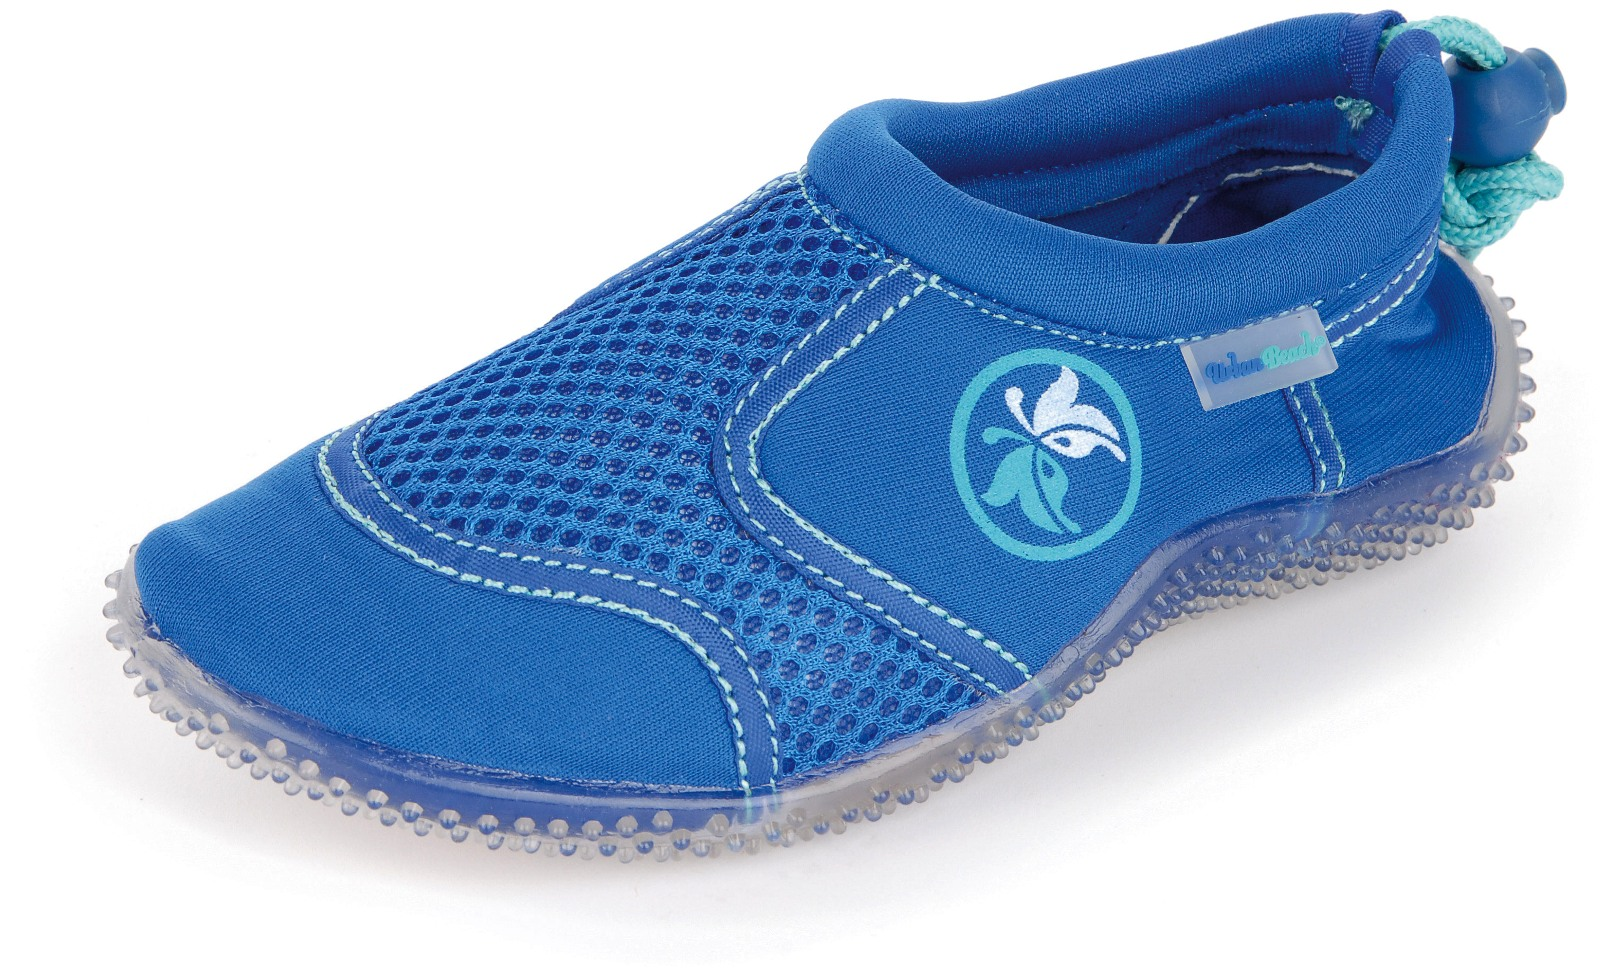 Toddler Beach Shoes Uk